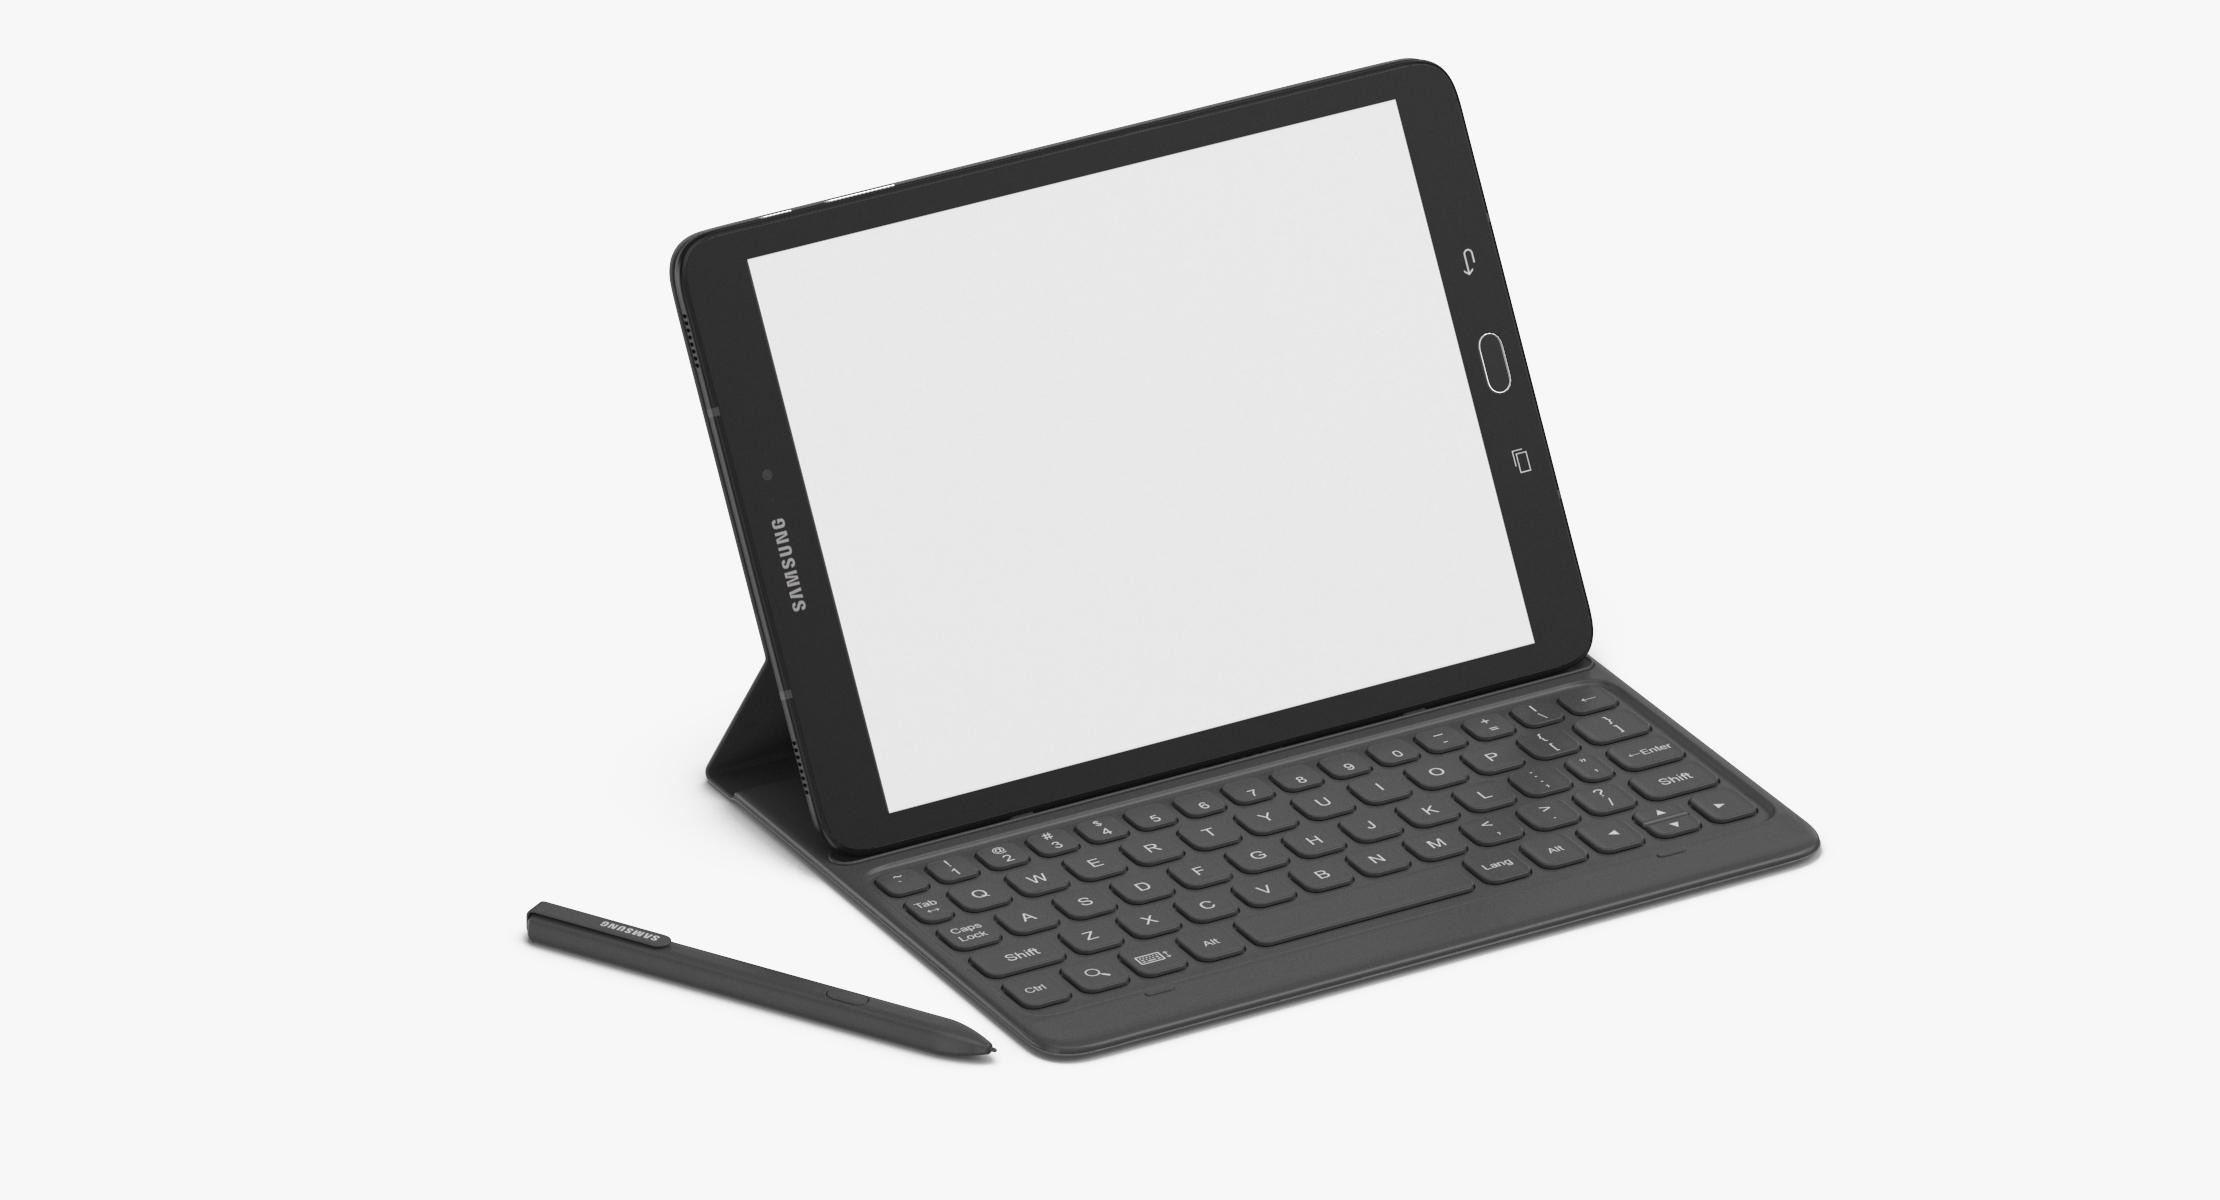 Samsung Galaxy Tab S3 With Keyboard & Stylus - reel 1